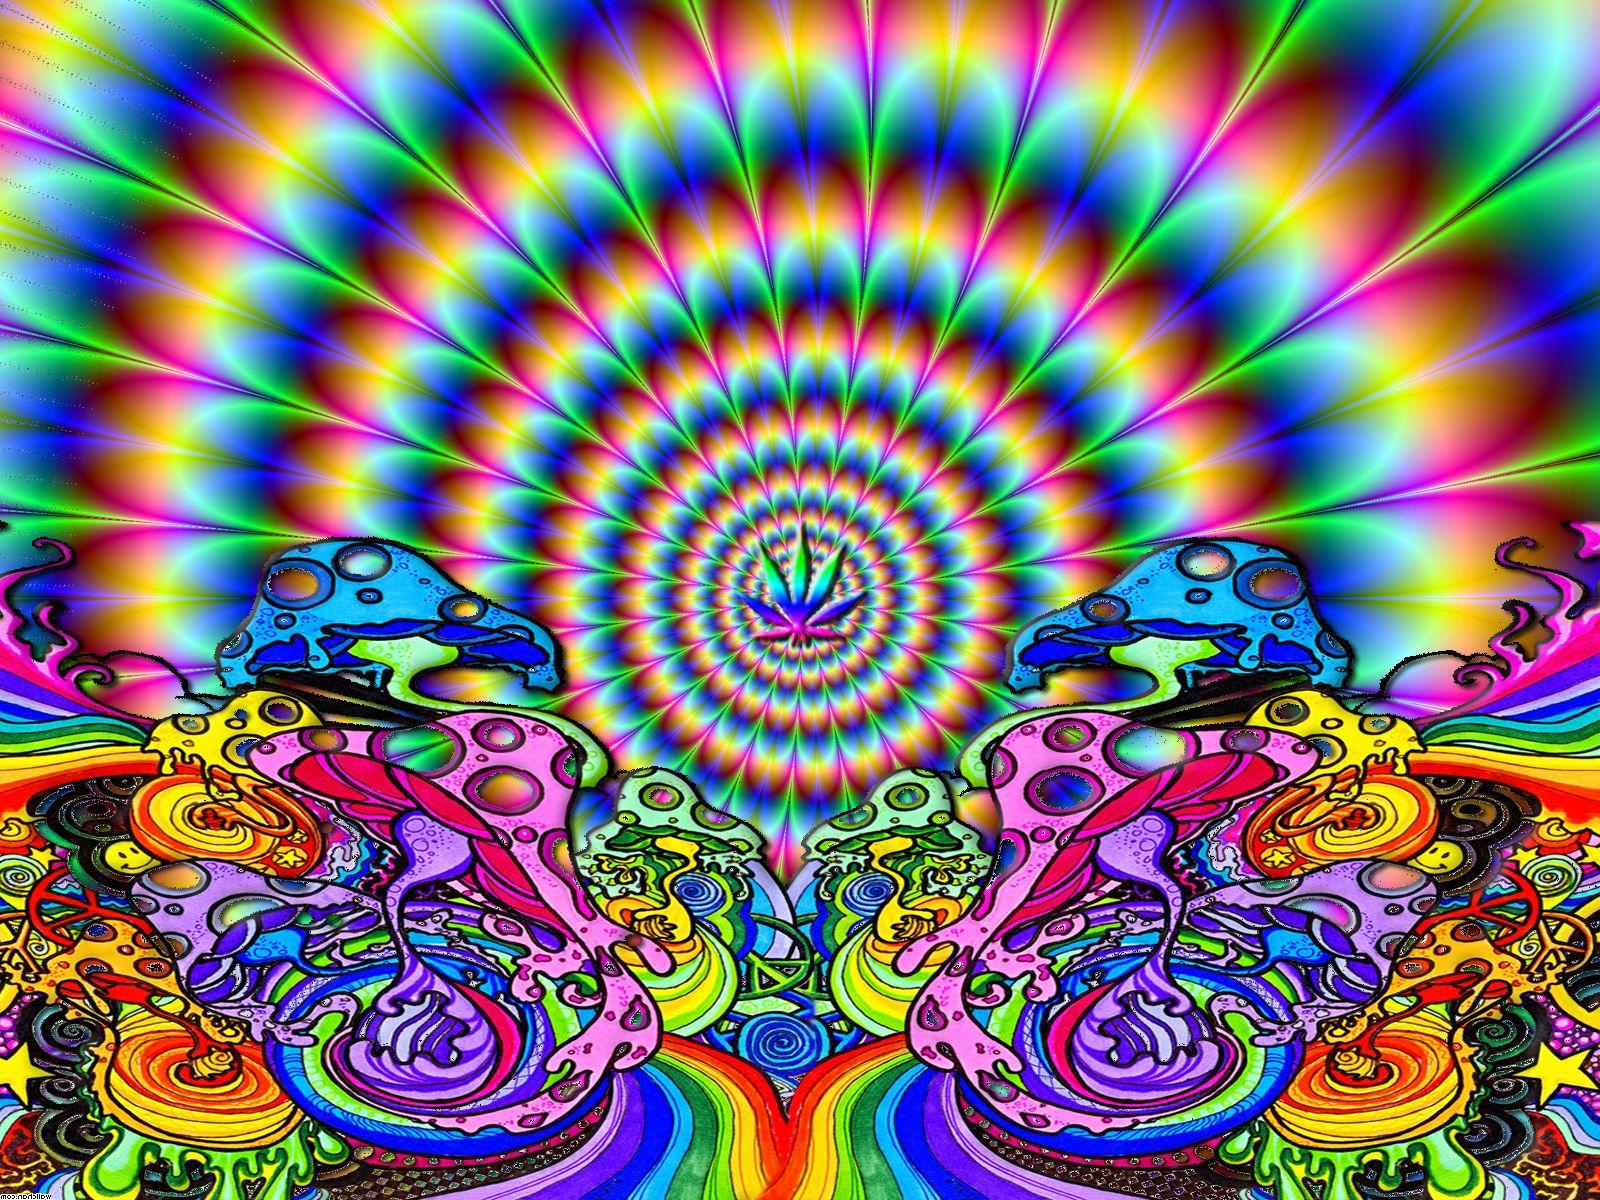 50 trippy background wallpaper psychedelic wallpaper pictures in hd for desktop - Psychedelic wallpaper hd ...